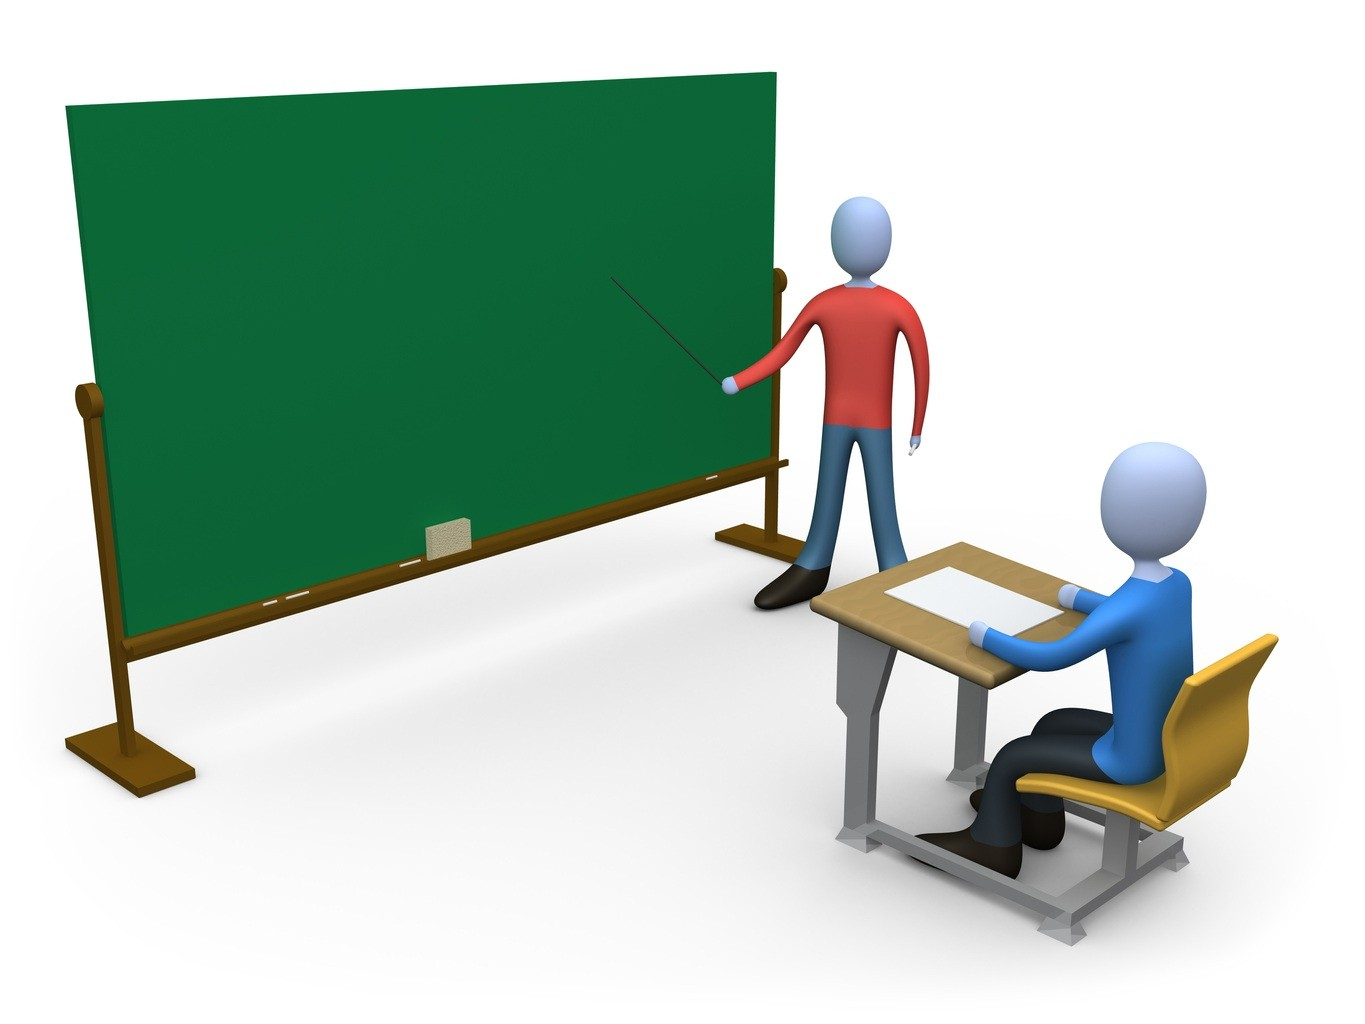 computer education clipart - photo #27